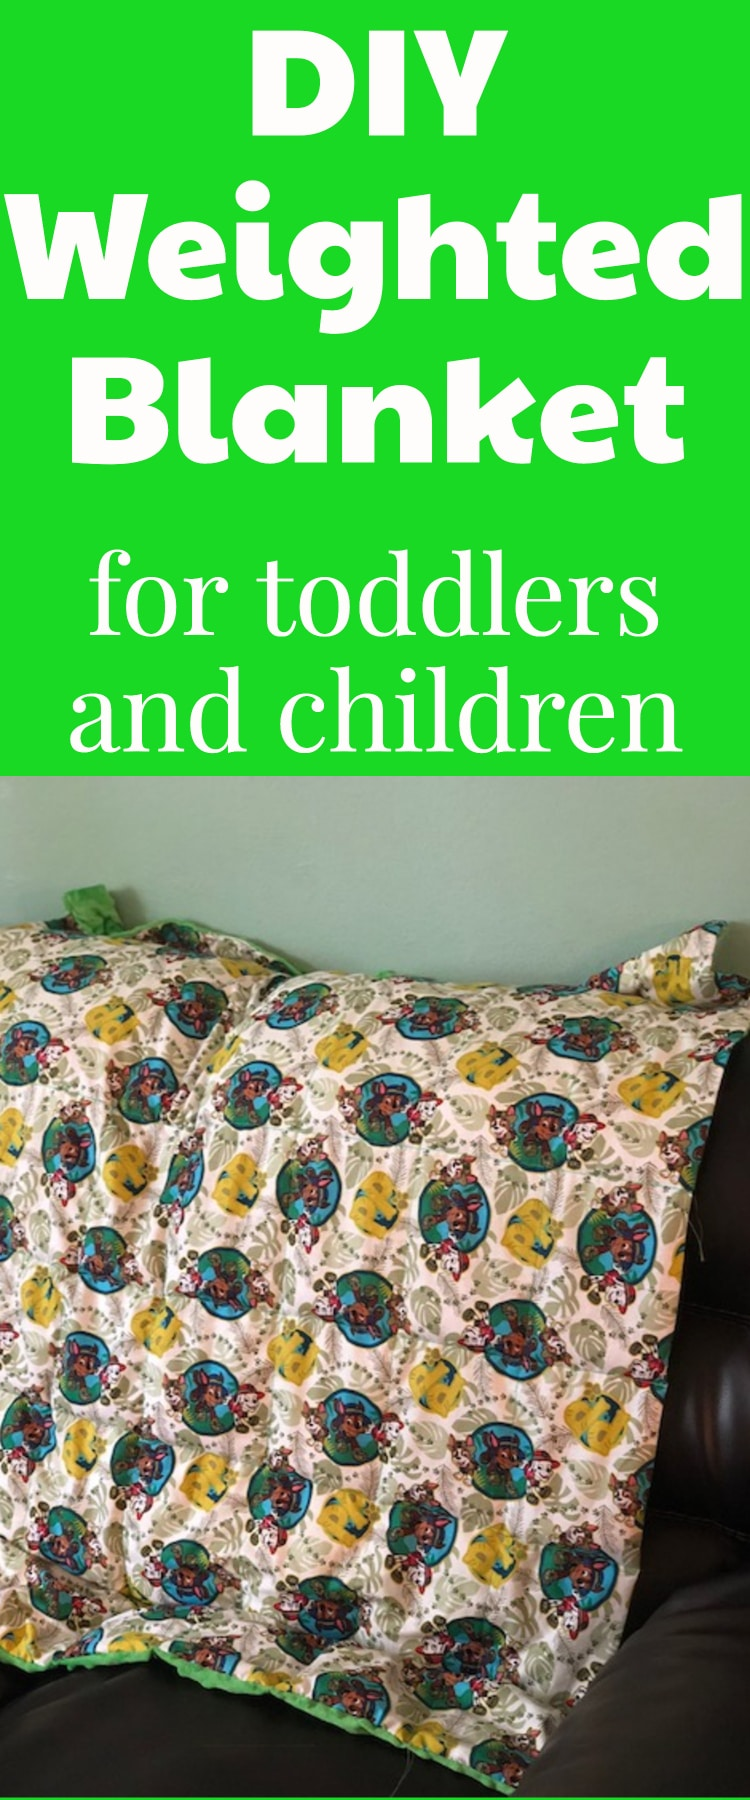 DIY Weighted Blanket / Weighted Blanket Tutorial / Anxiety / ADHD / Autism / Sensory Disorders / Sensory Processing #sensory #SPD #ADHD #Anxiety #Autisum #weightedblanket #sewing #sewingtutorial via @clarkscondensed